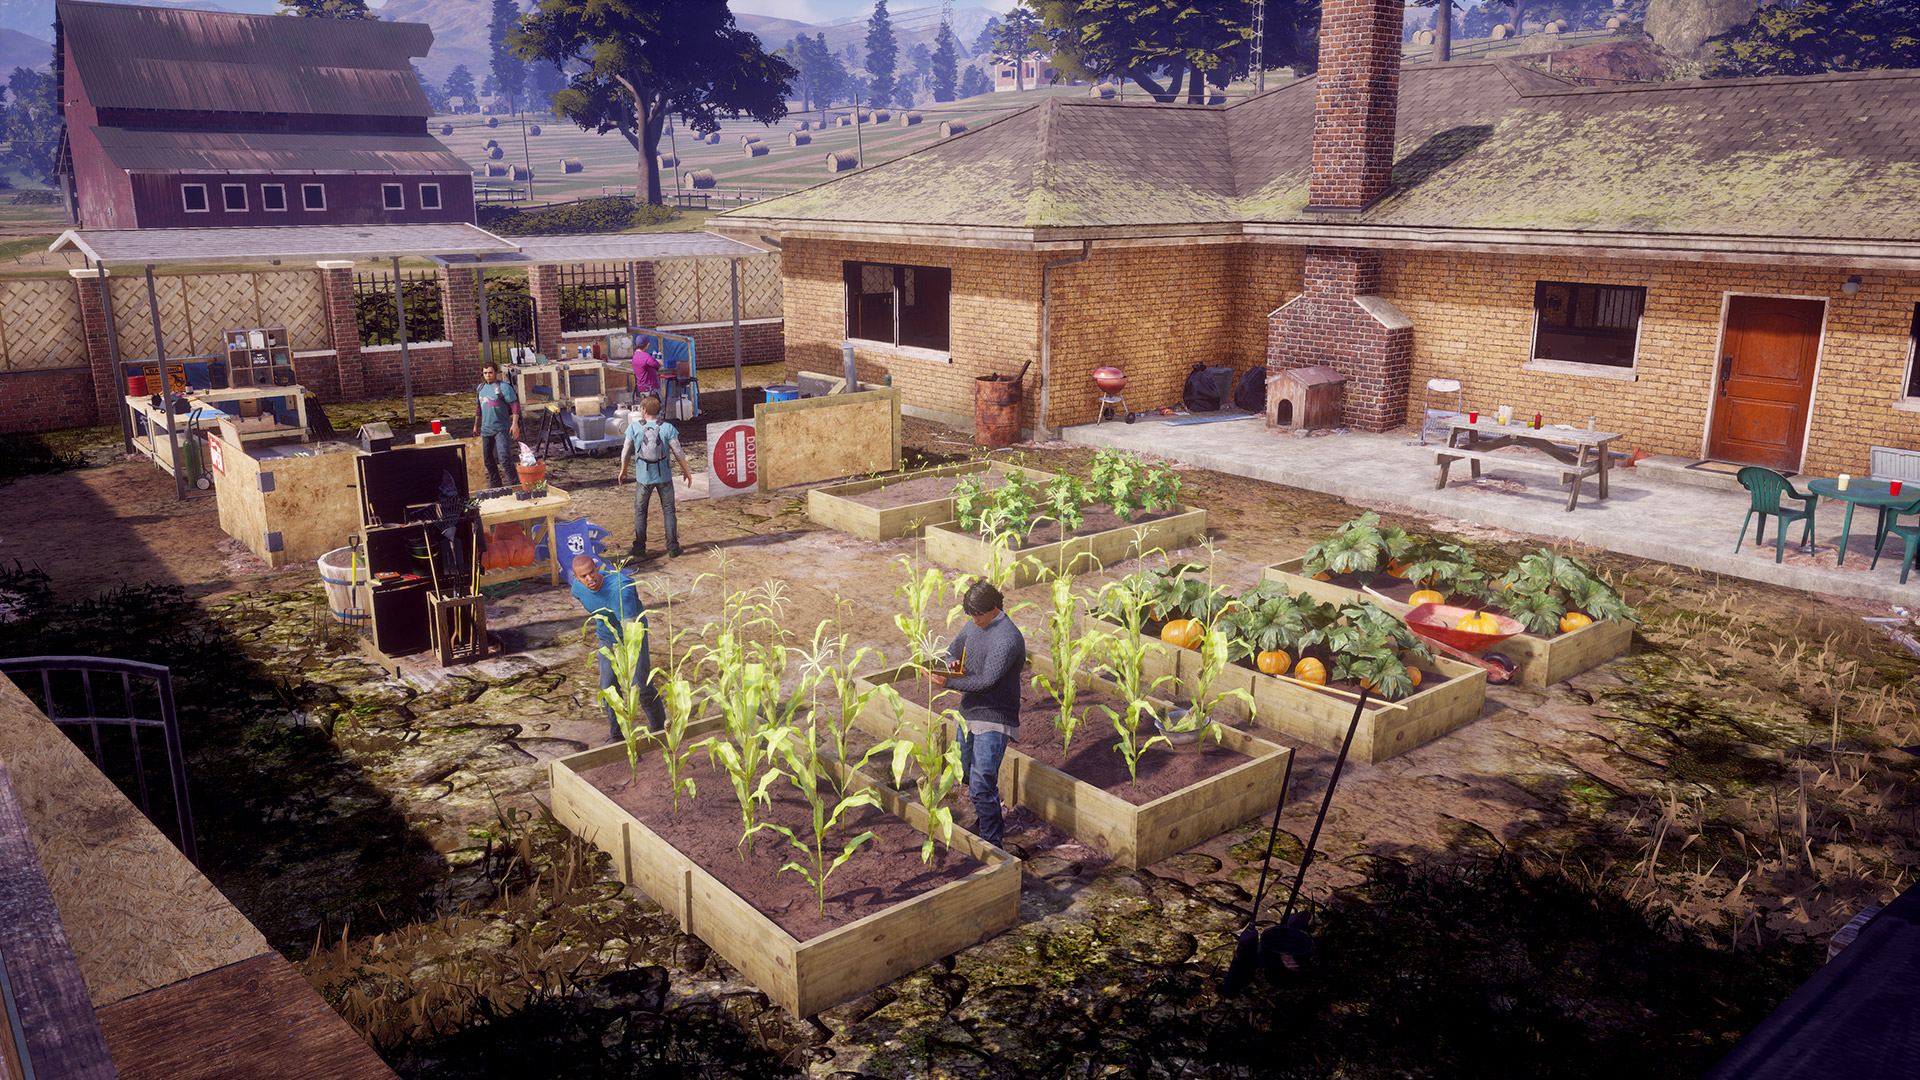 State of Decay 2 on Steam will have cross-play co-op screenshot